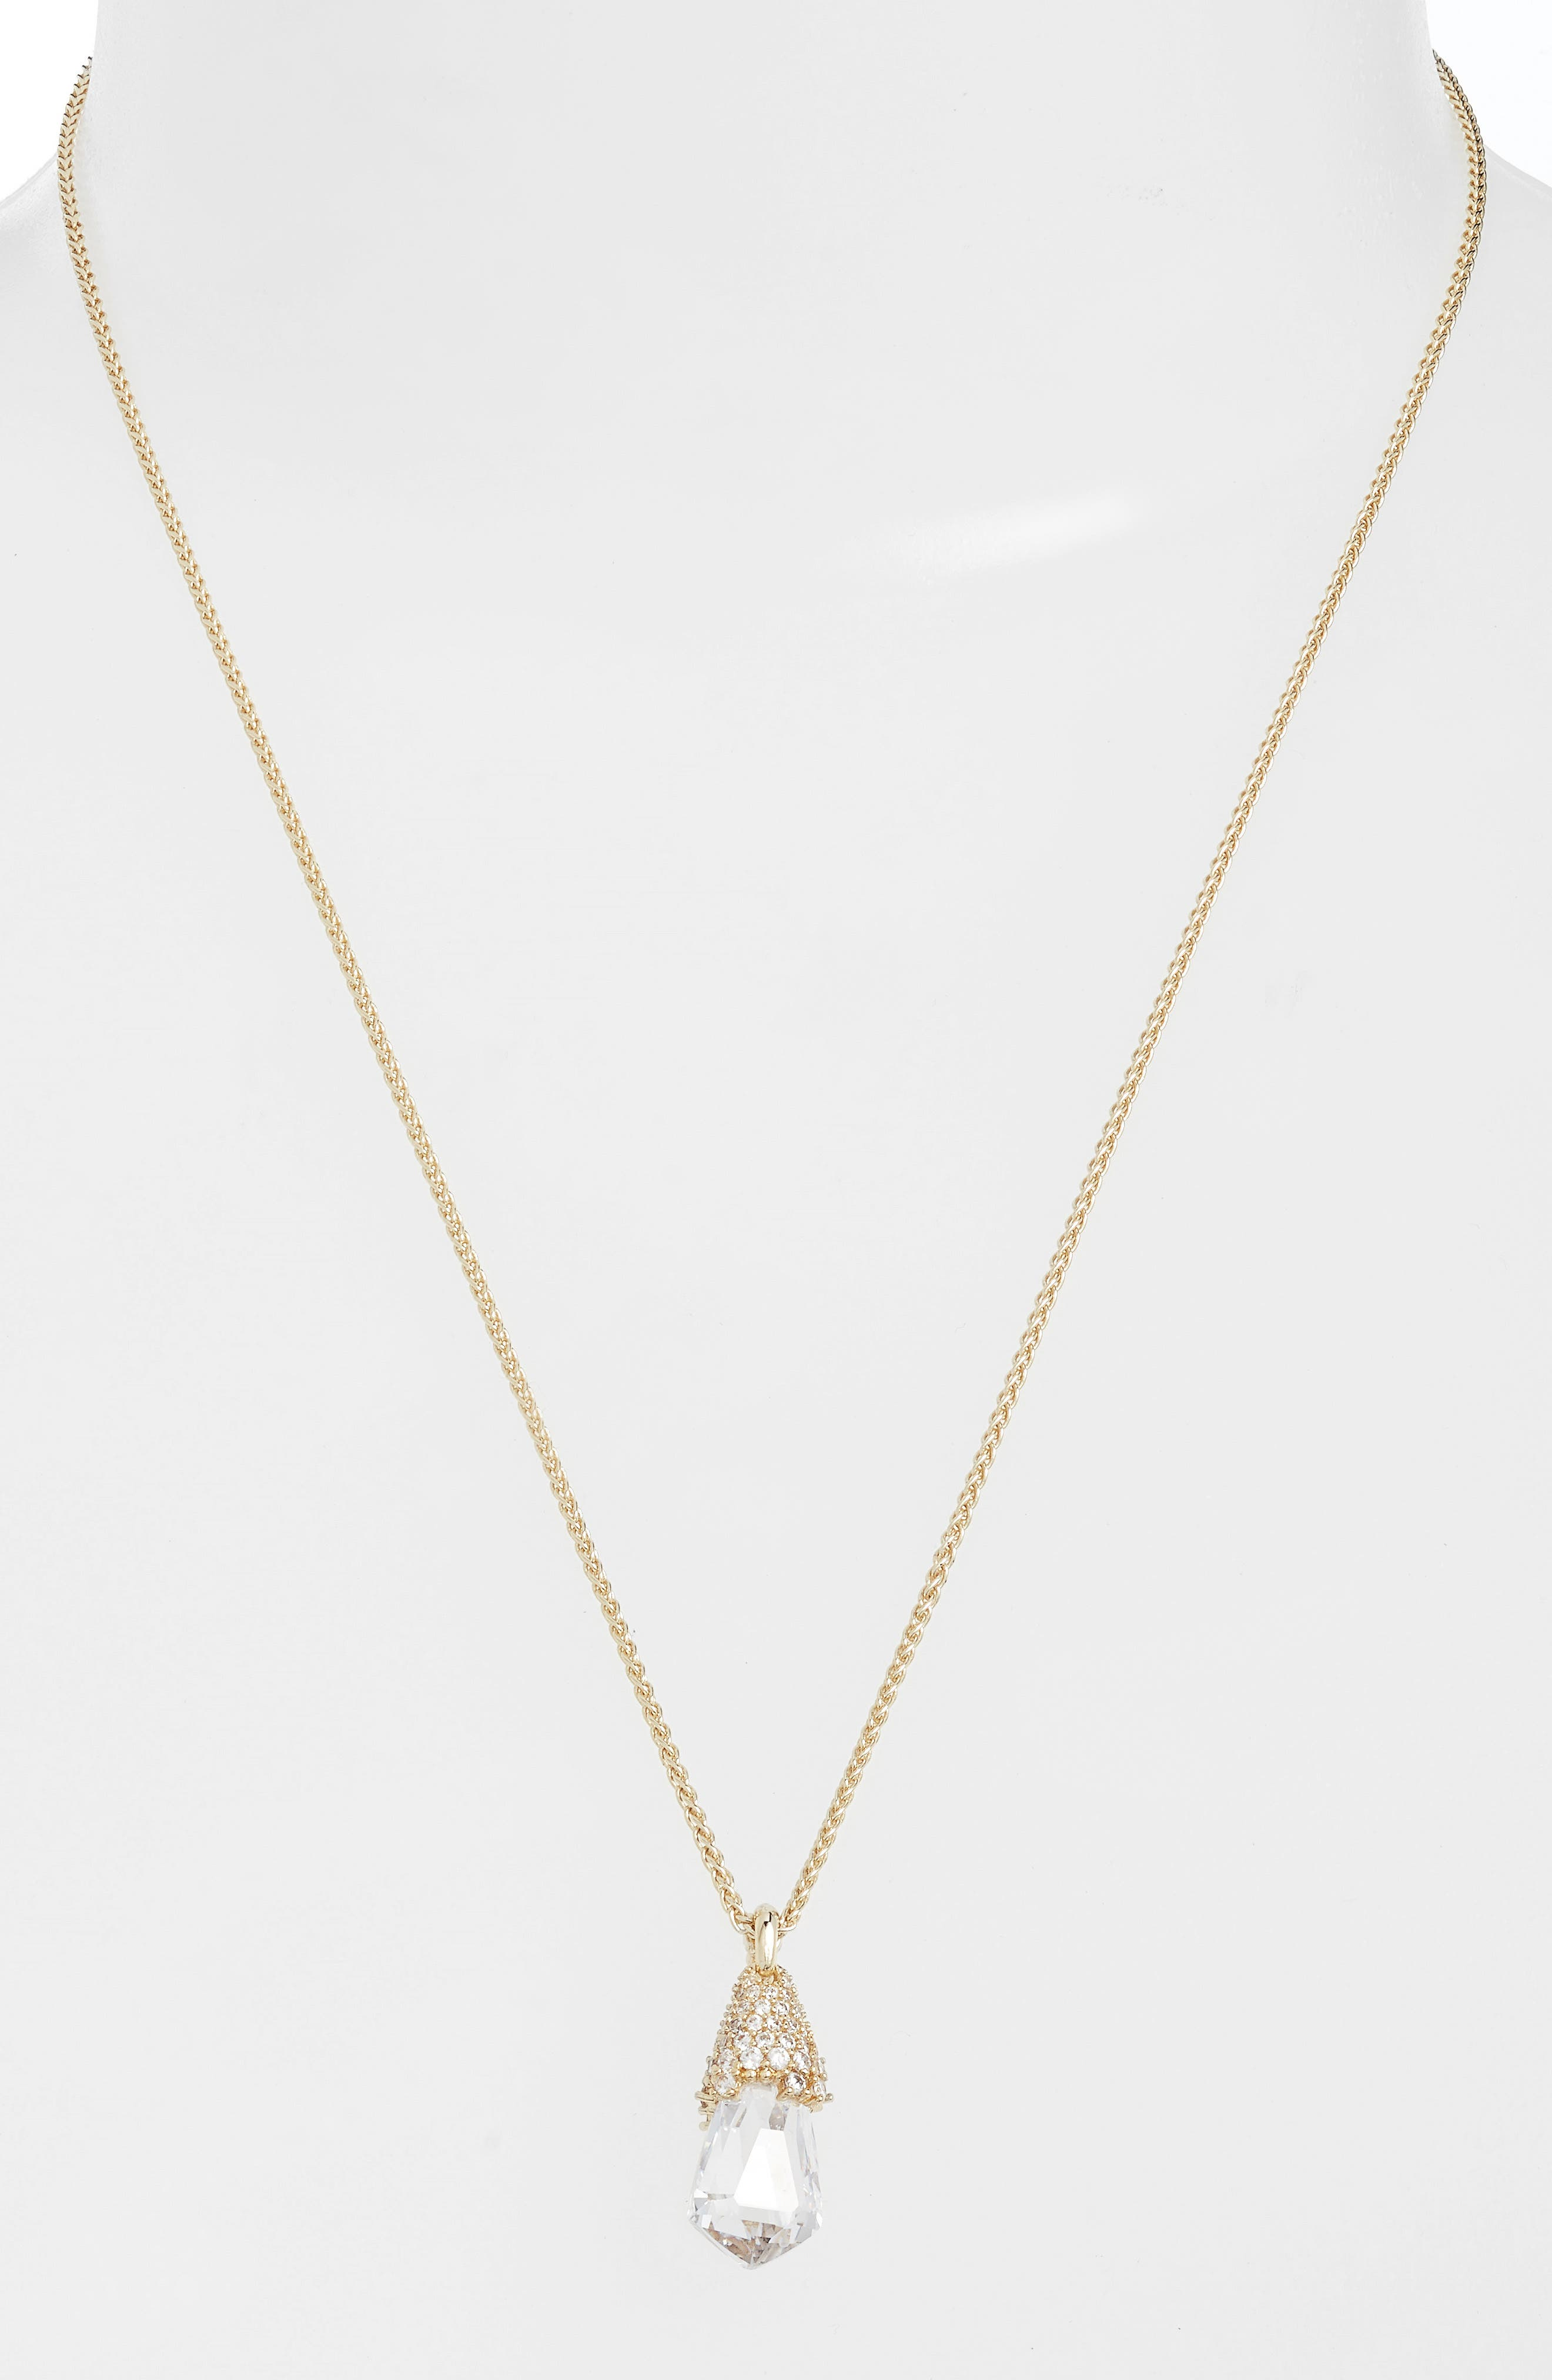 Main Image - Kendra Scott Ella Convertible Teardrop Pendant Necklace